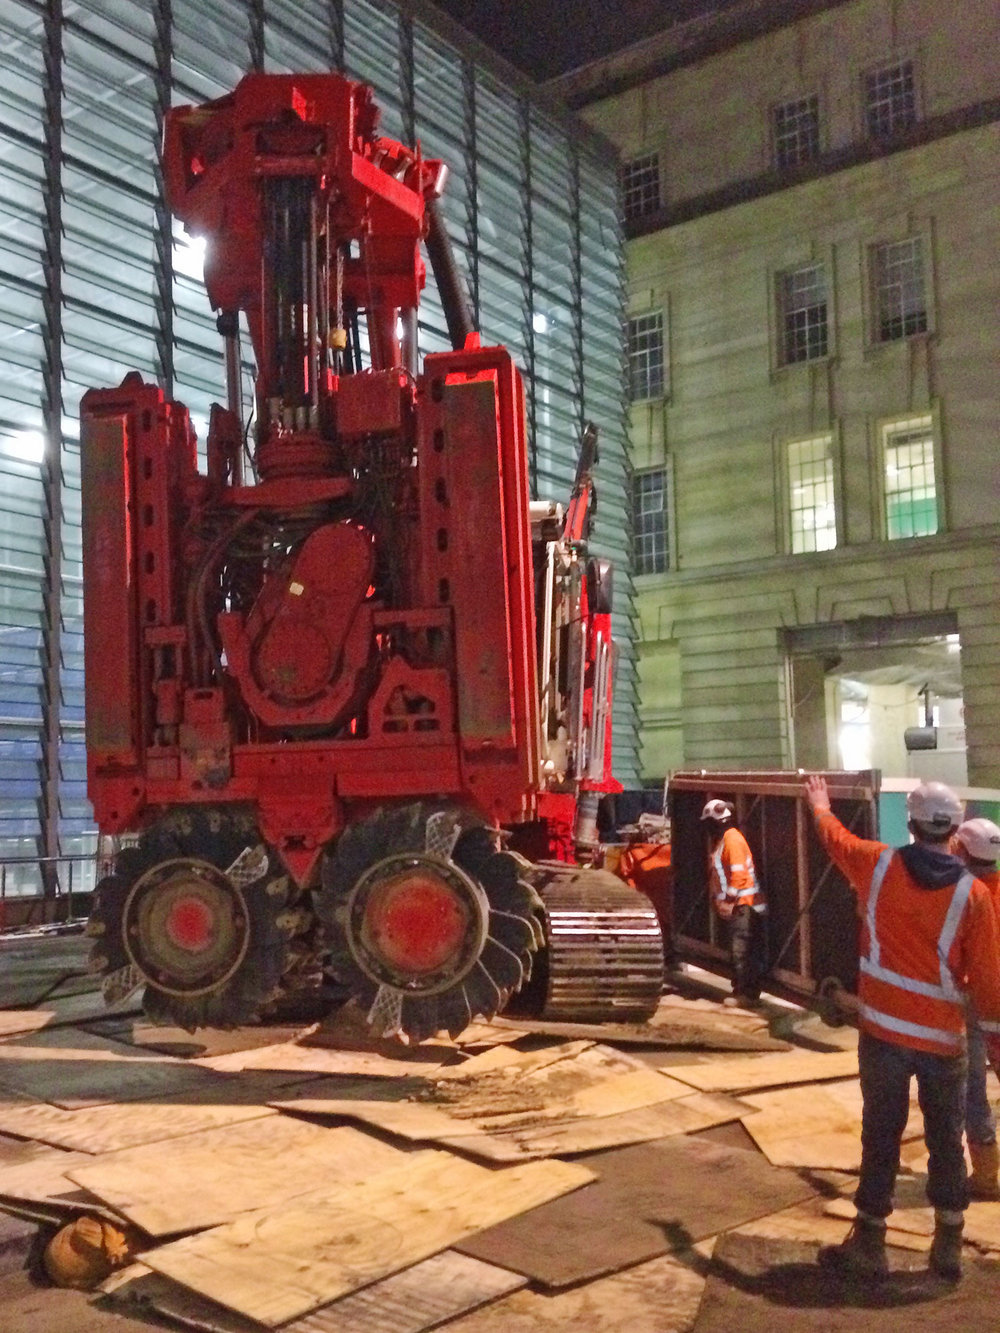 Sandrine being moved into Britomart 30 August 2017